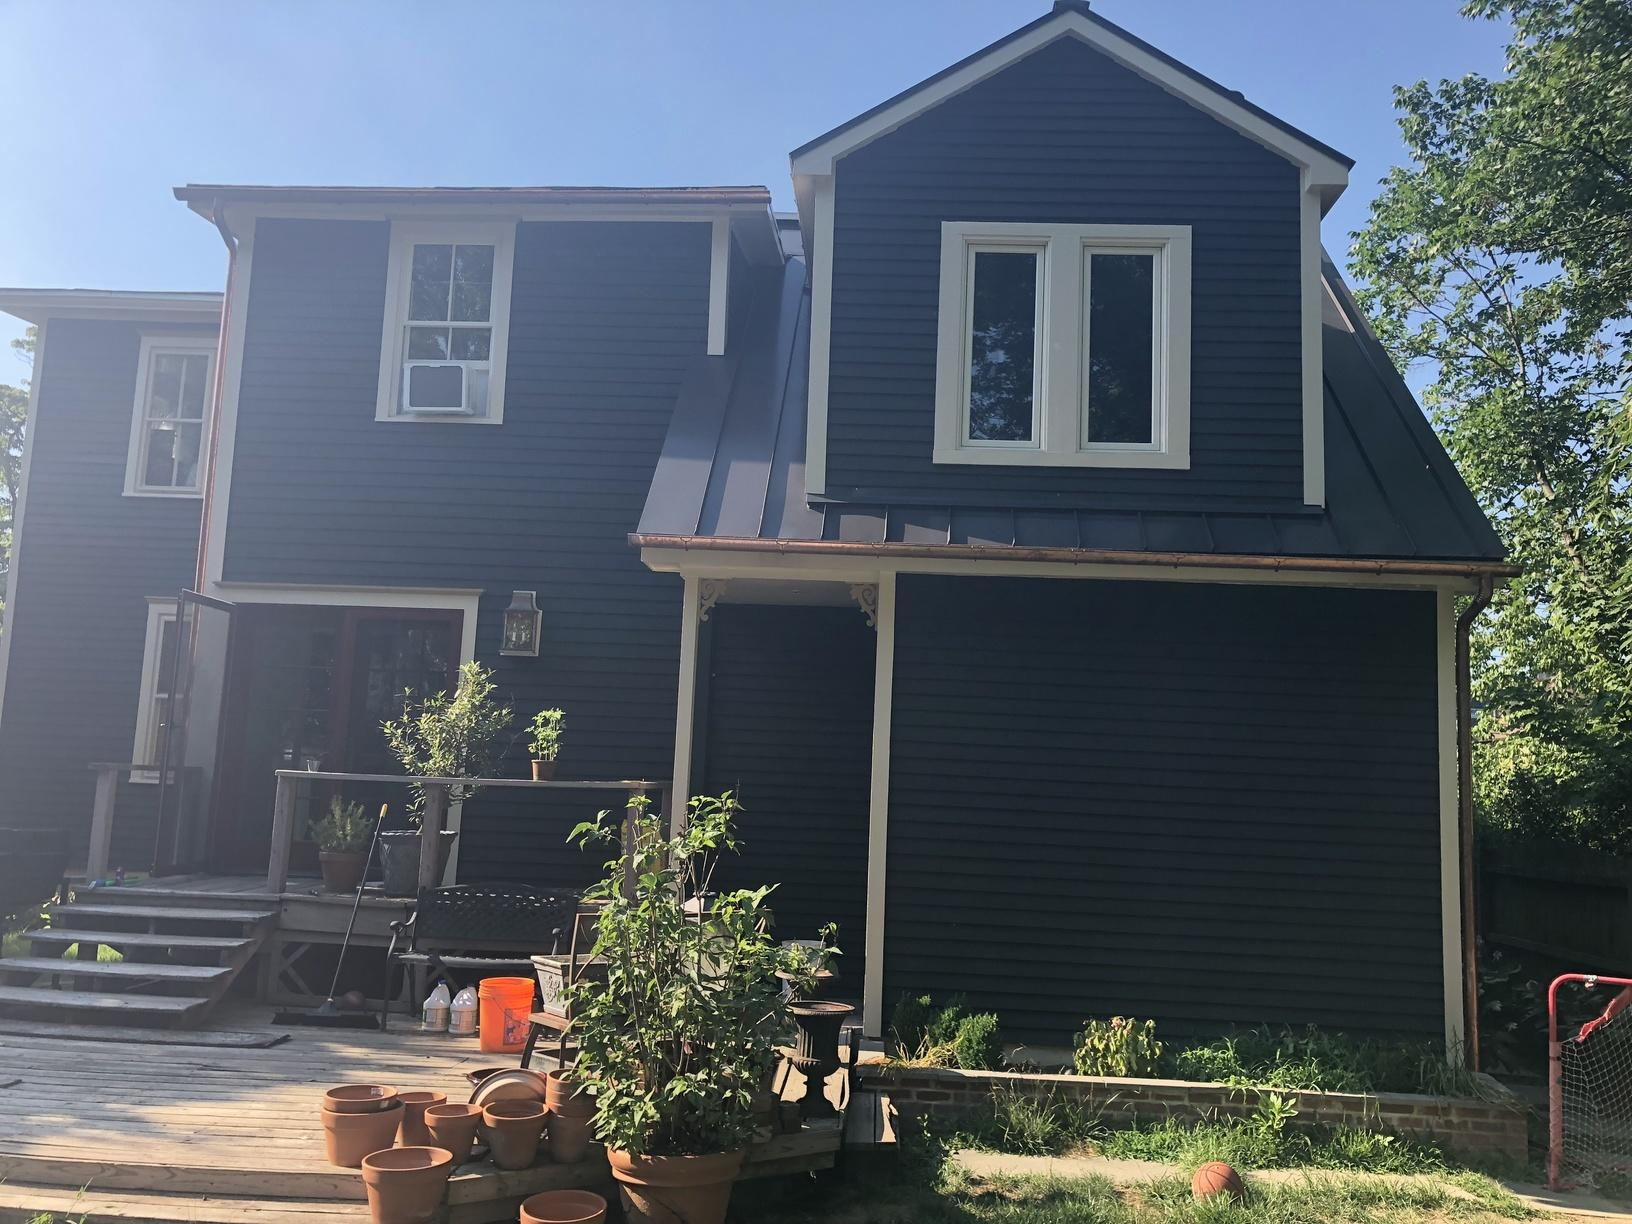 Replacing Old Asphalt Shingles with Mansard Brown Standing Seam Metal Roof in Haddonfield, NJ - After Photo